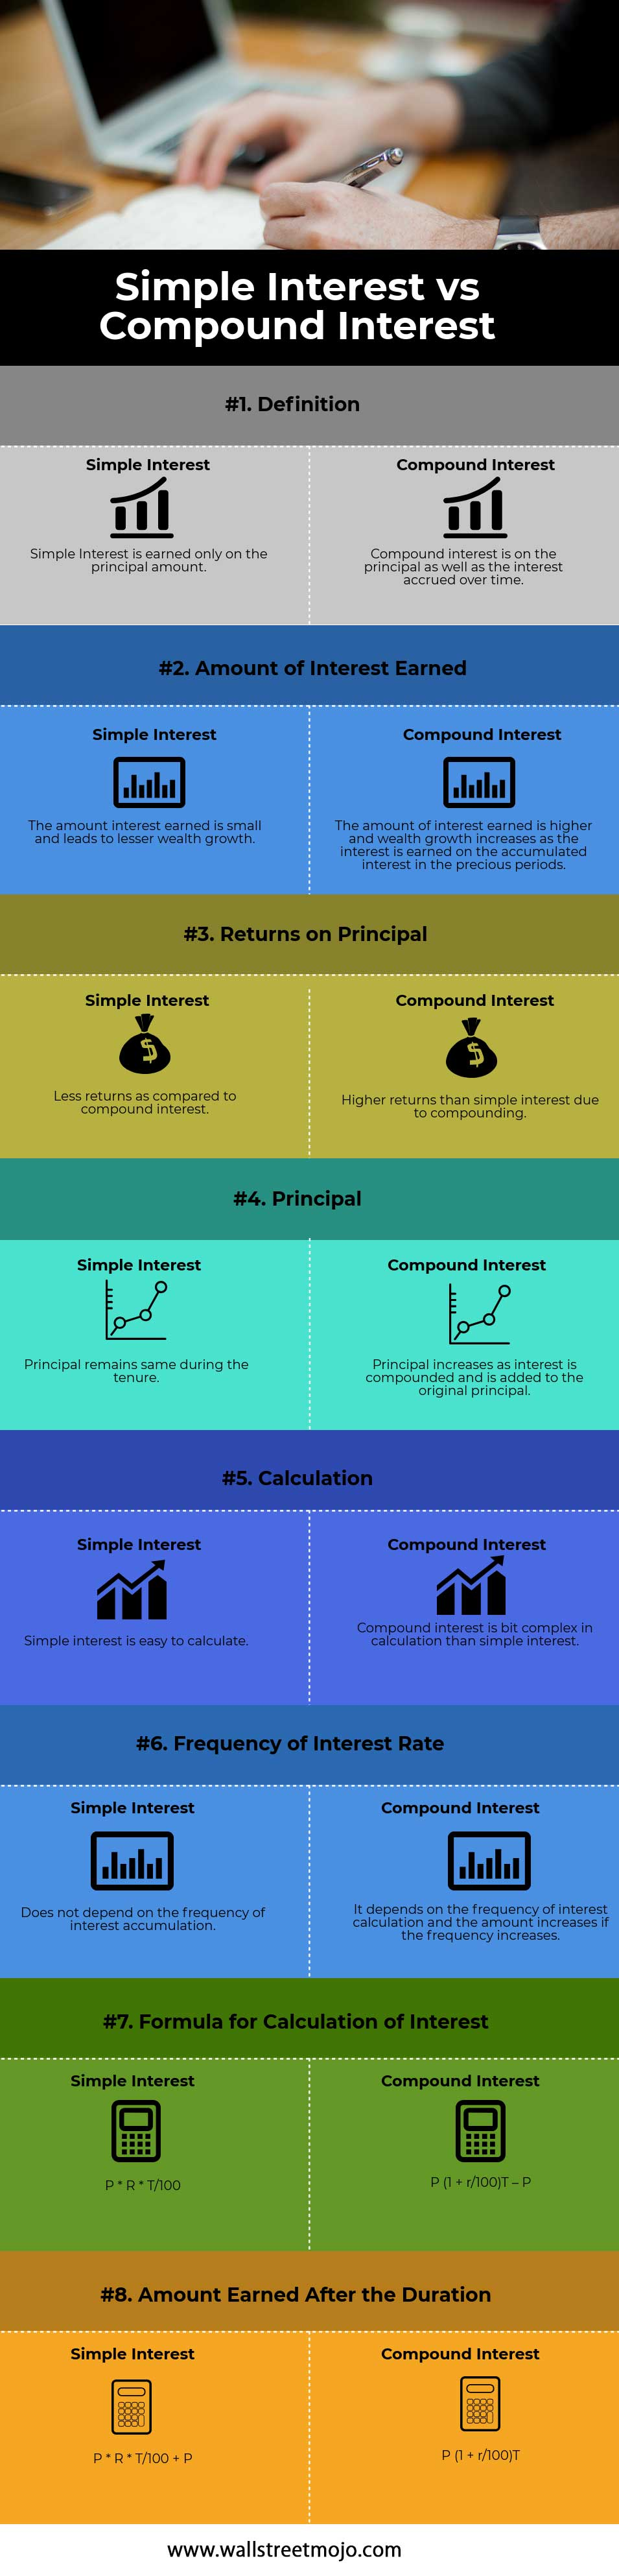 The difference between Simple-Interest and Compound-Interest